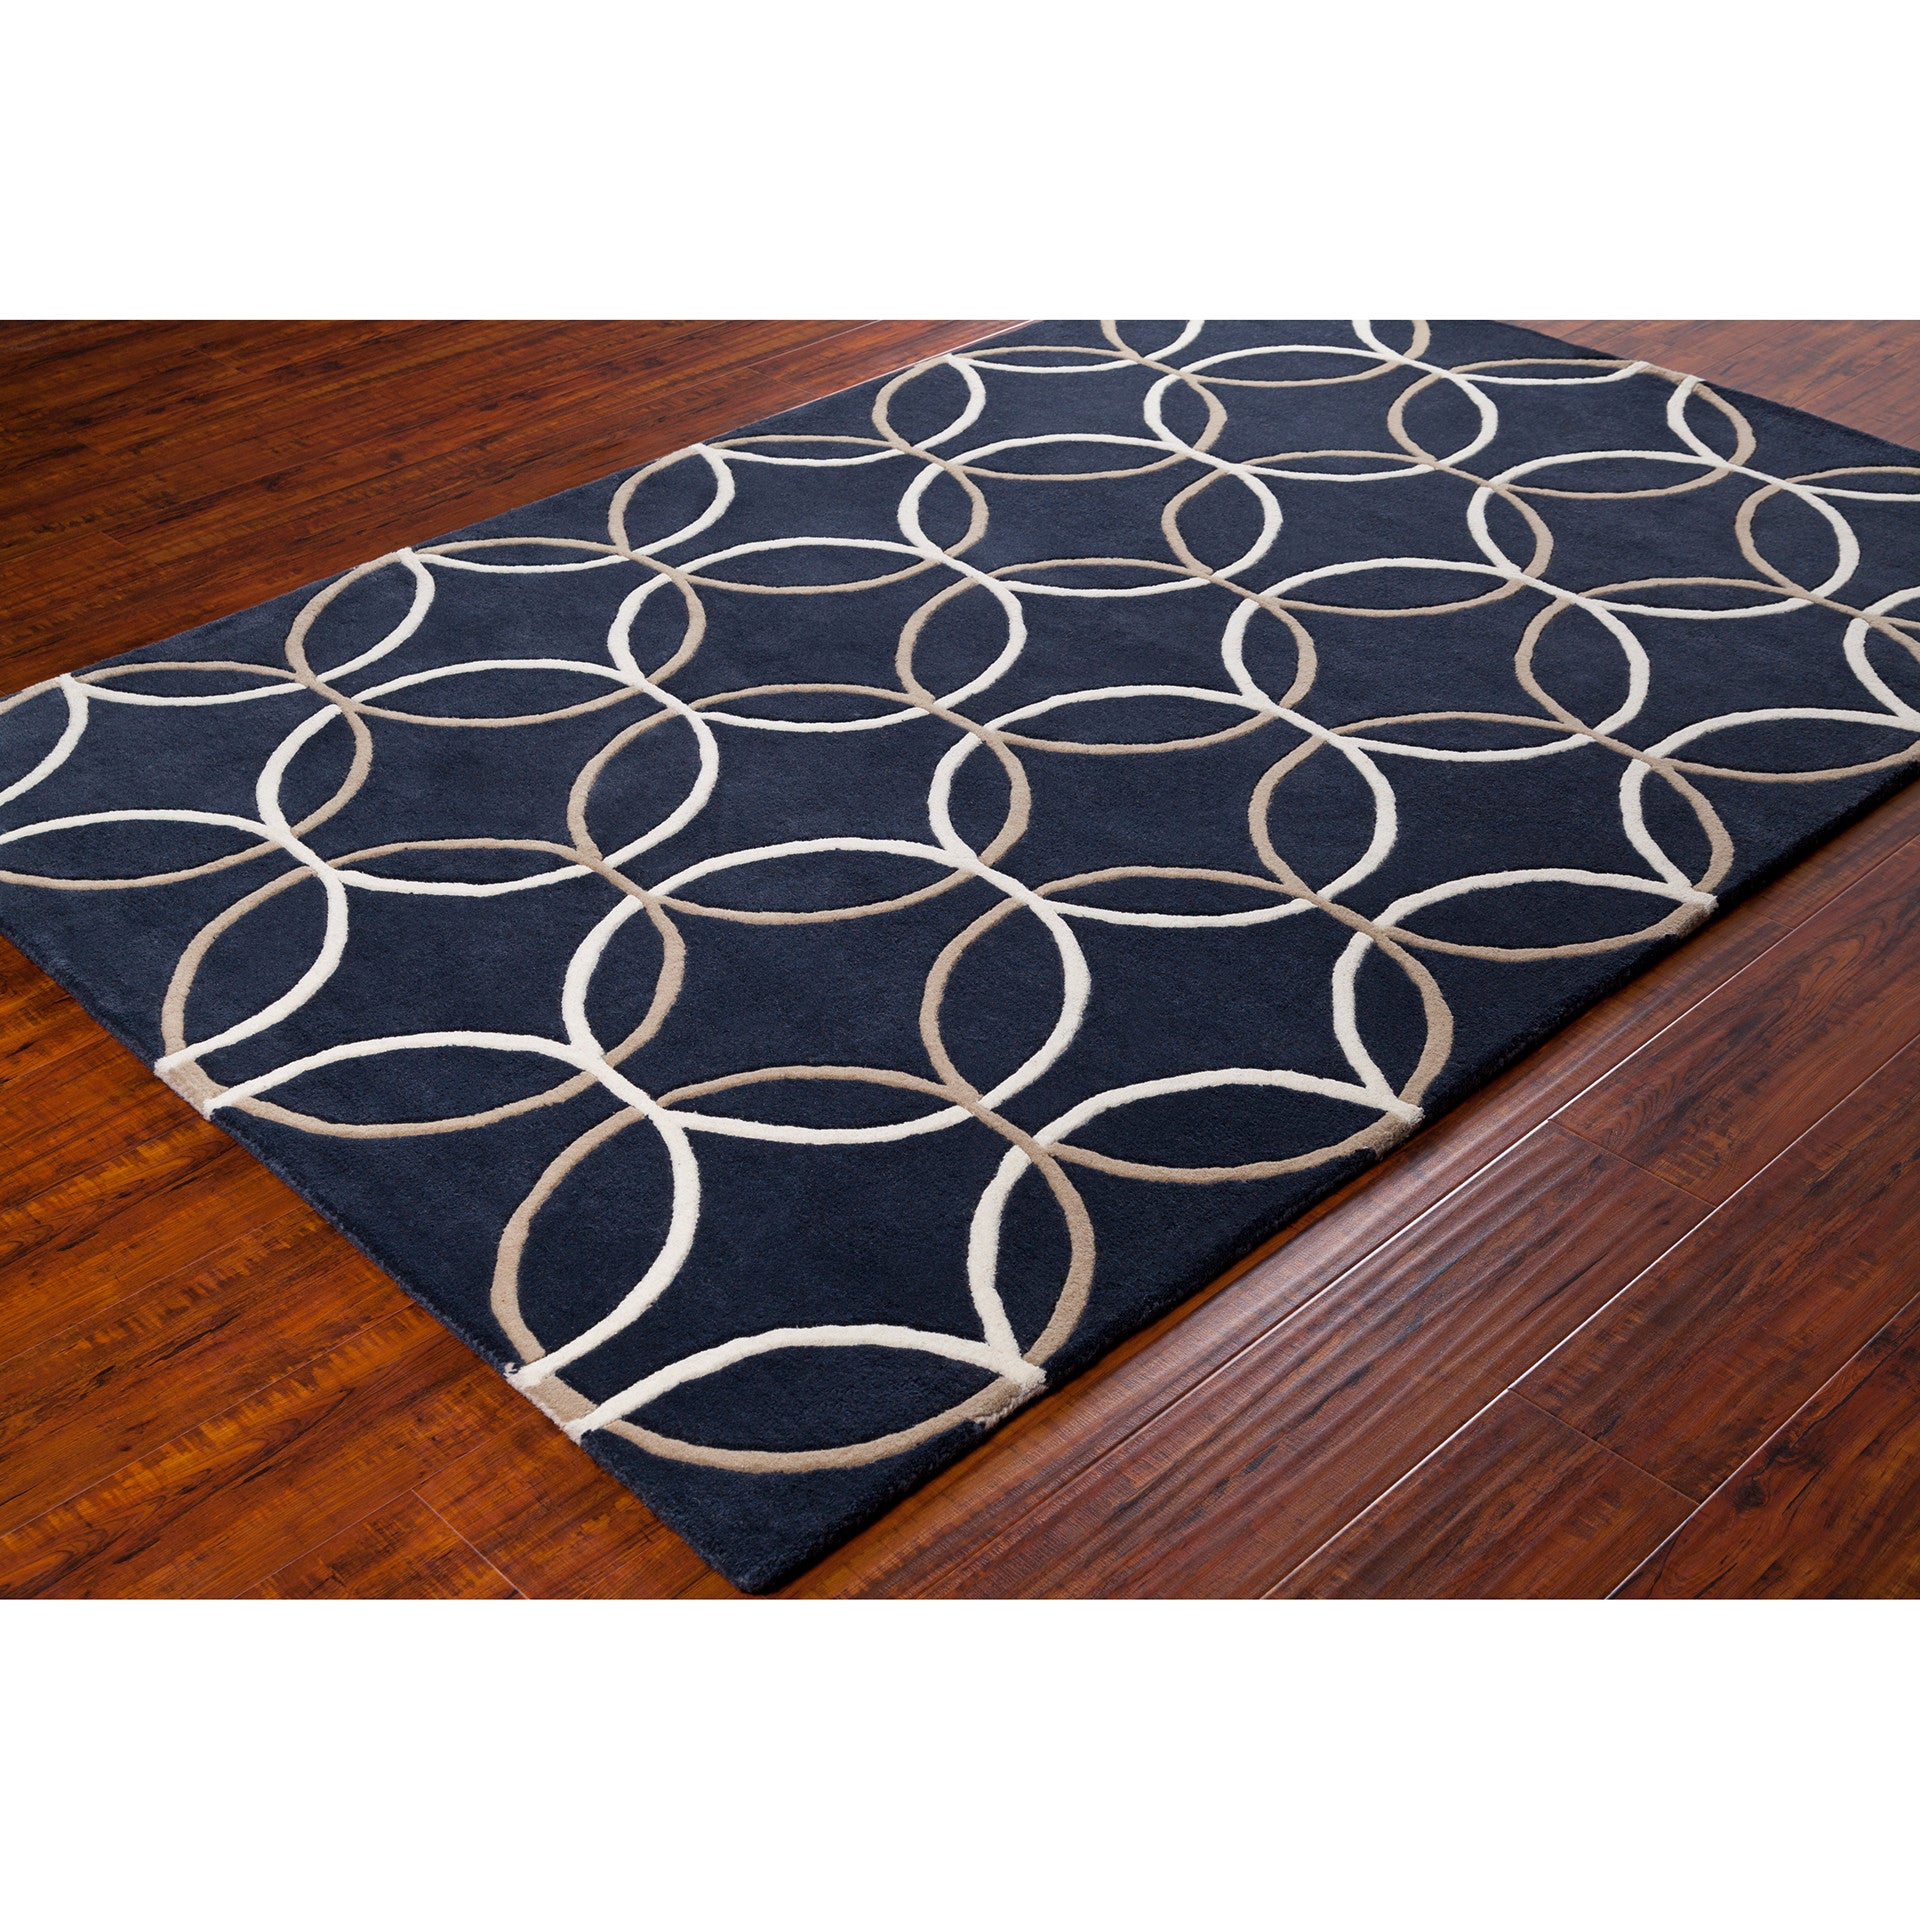 Chandra Stella Patterned Contemporary Wool Beige Aqua Area: Stella Collection Hand-Tufted Area Rug In Charcoal, Taupe